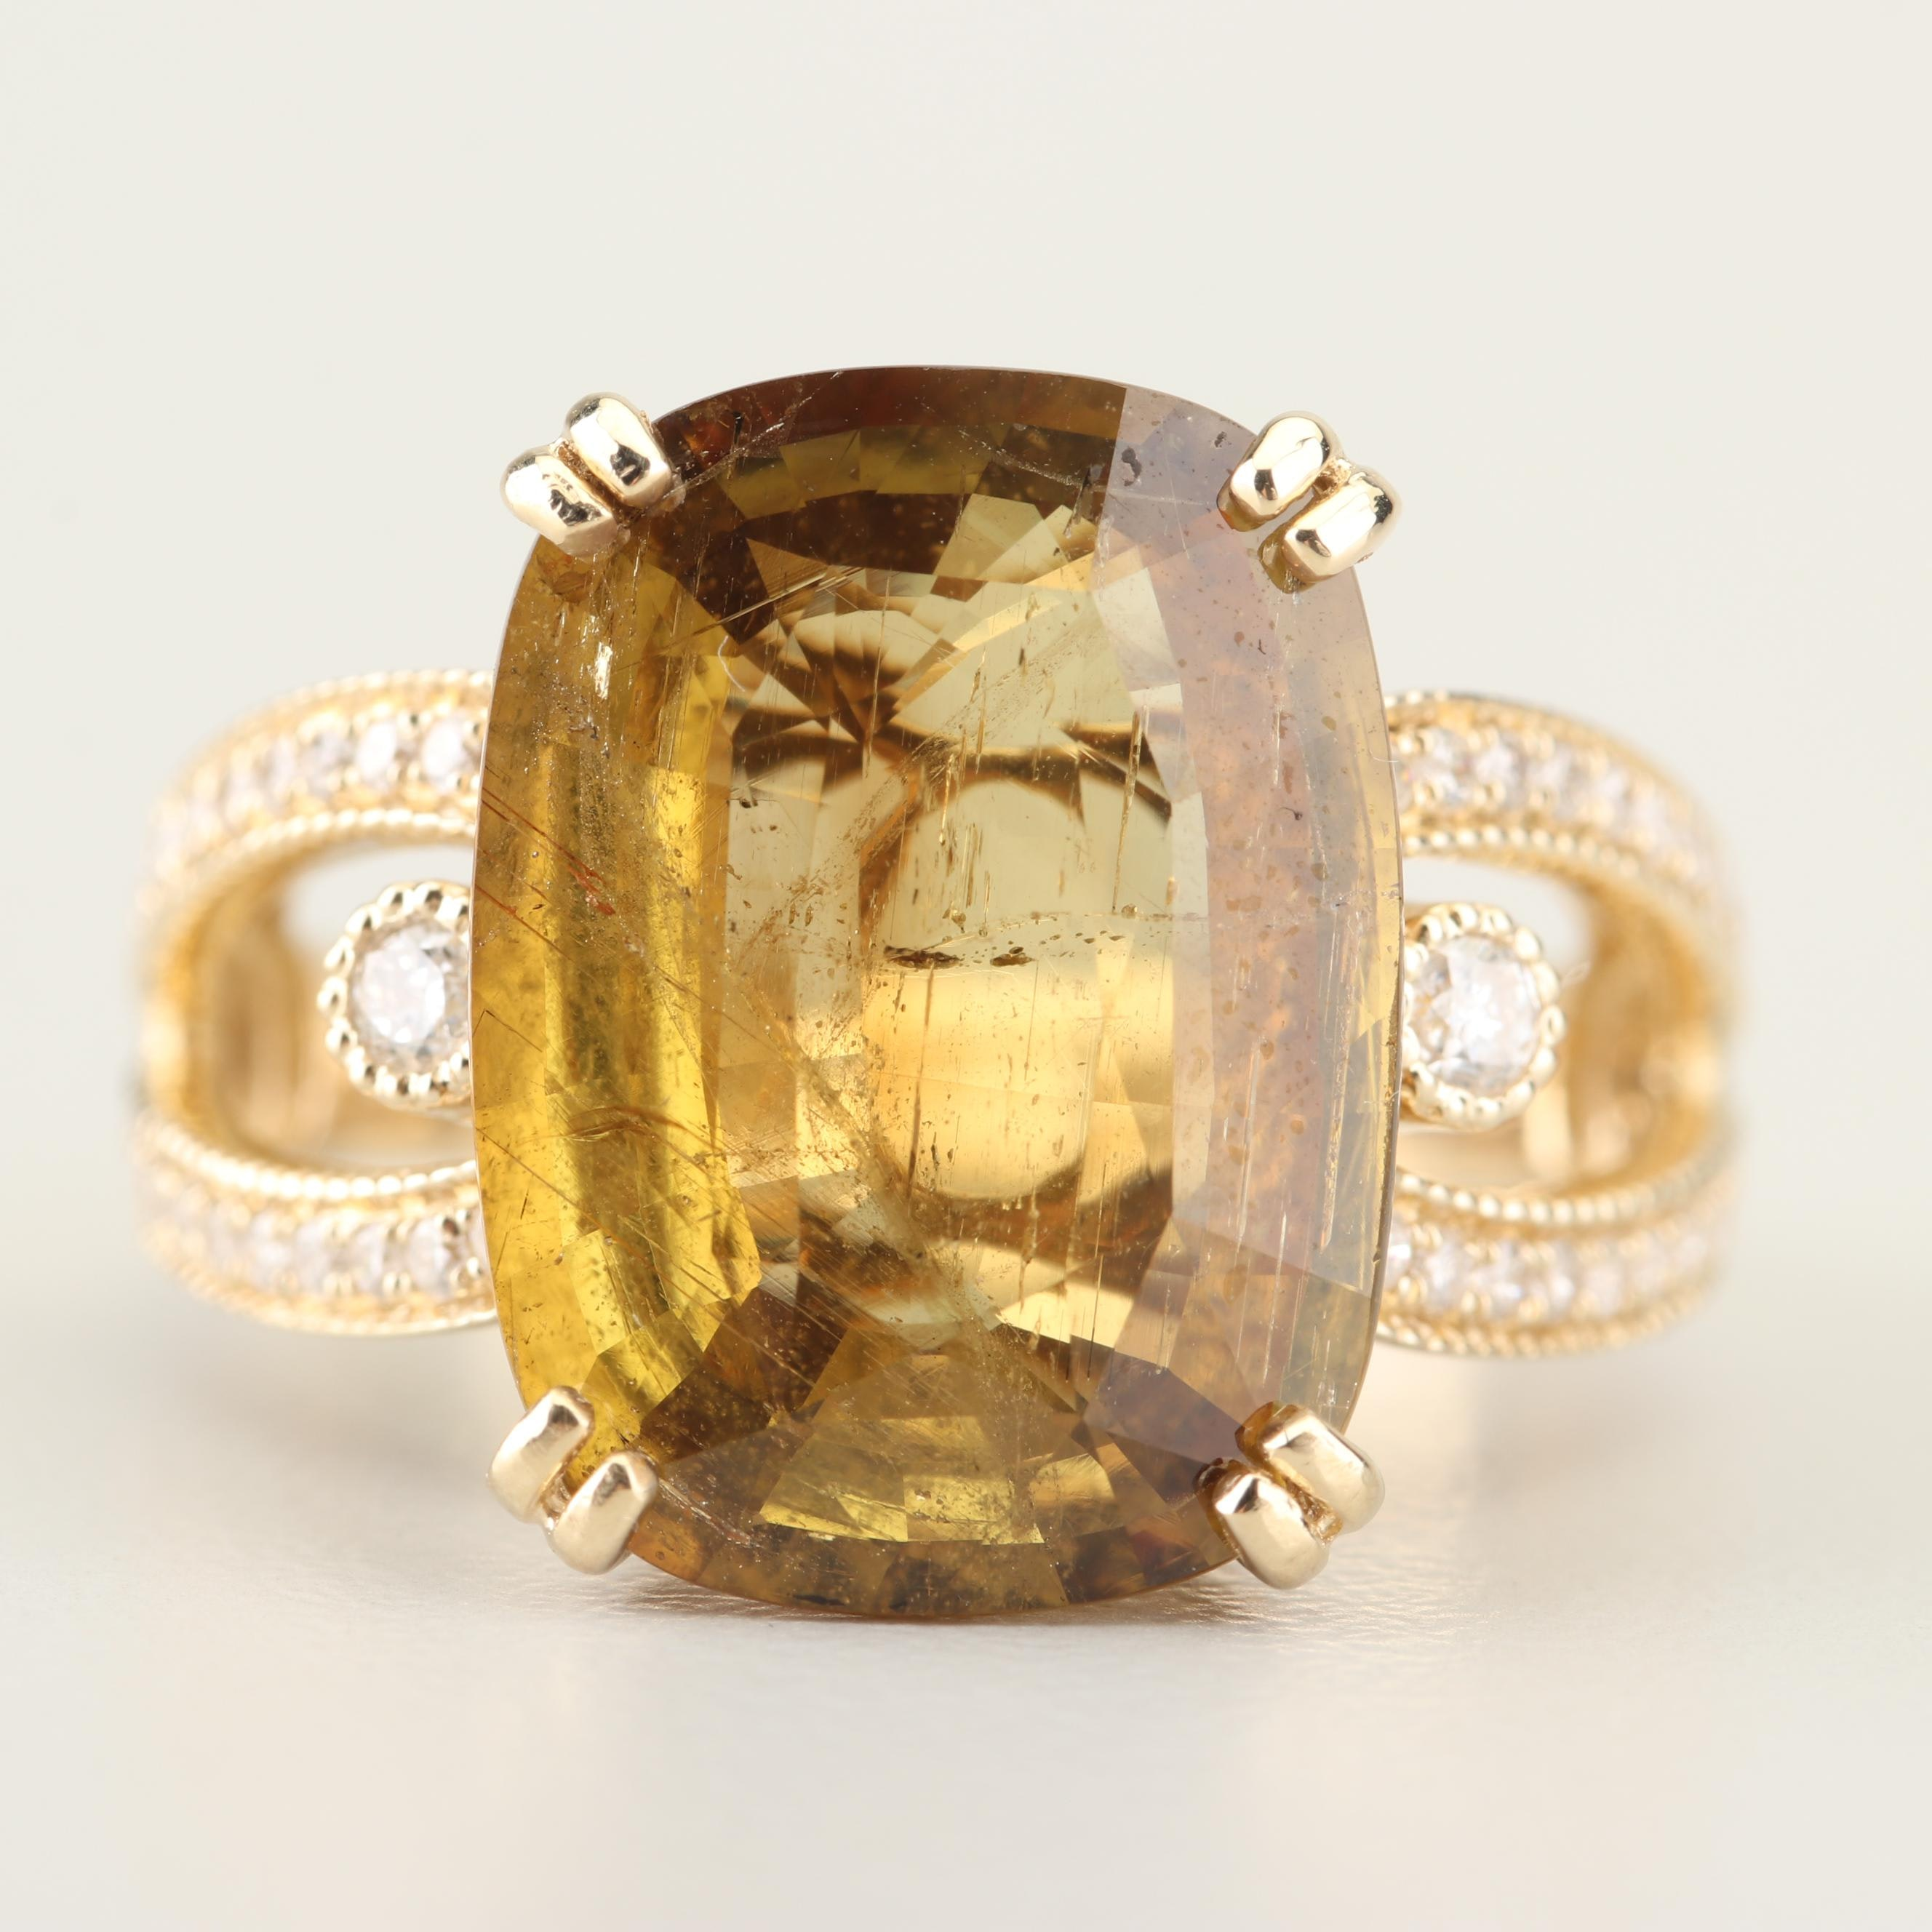 14K Yellow Gold 9.56 CT Alexandrite and Diamond Ring with GIA Report